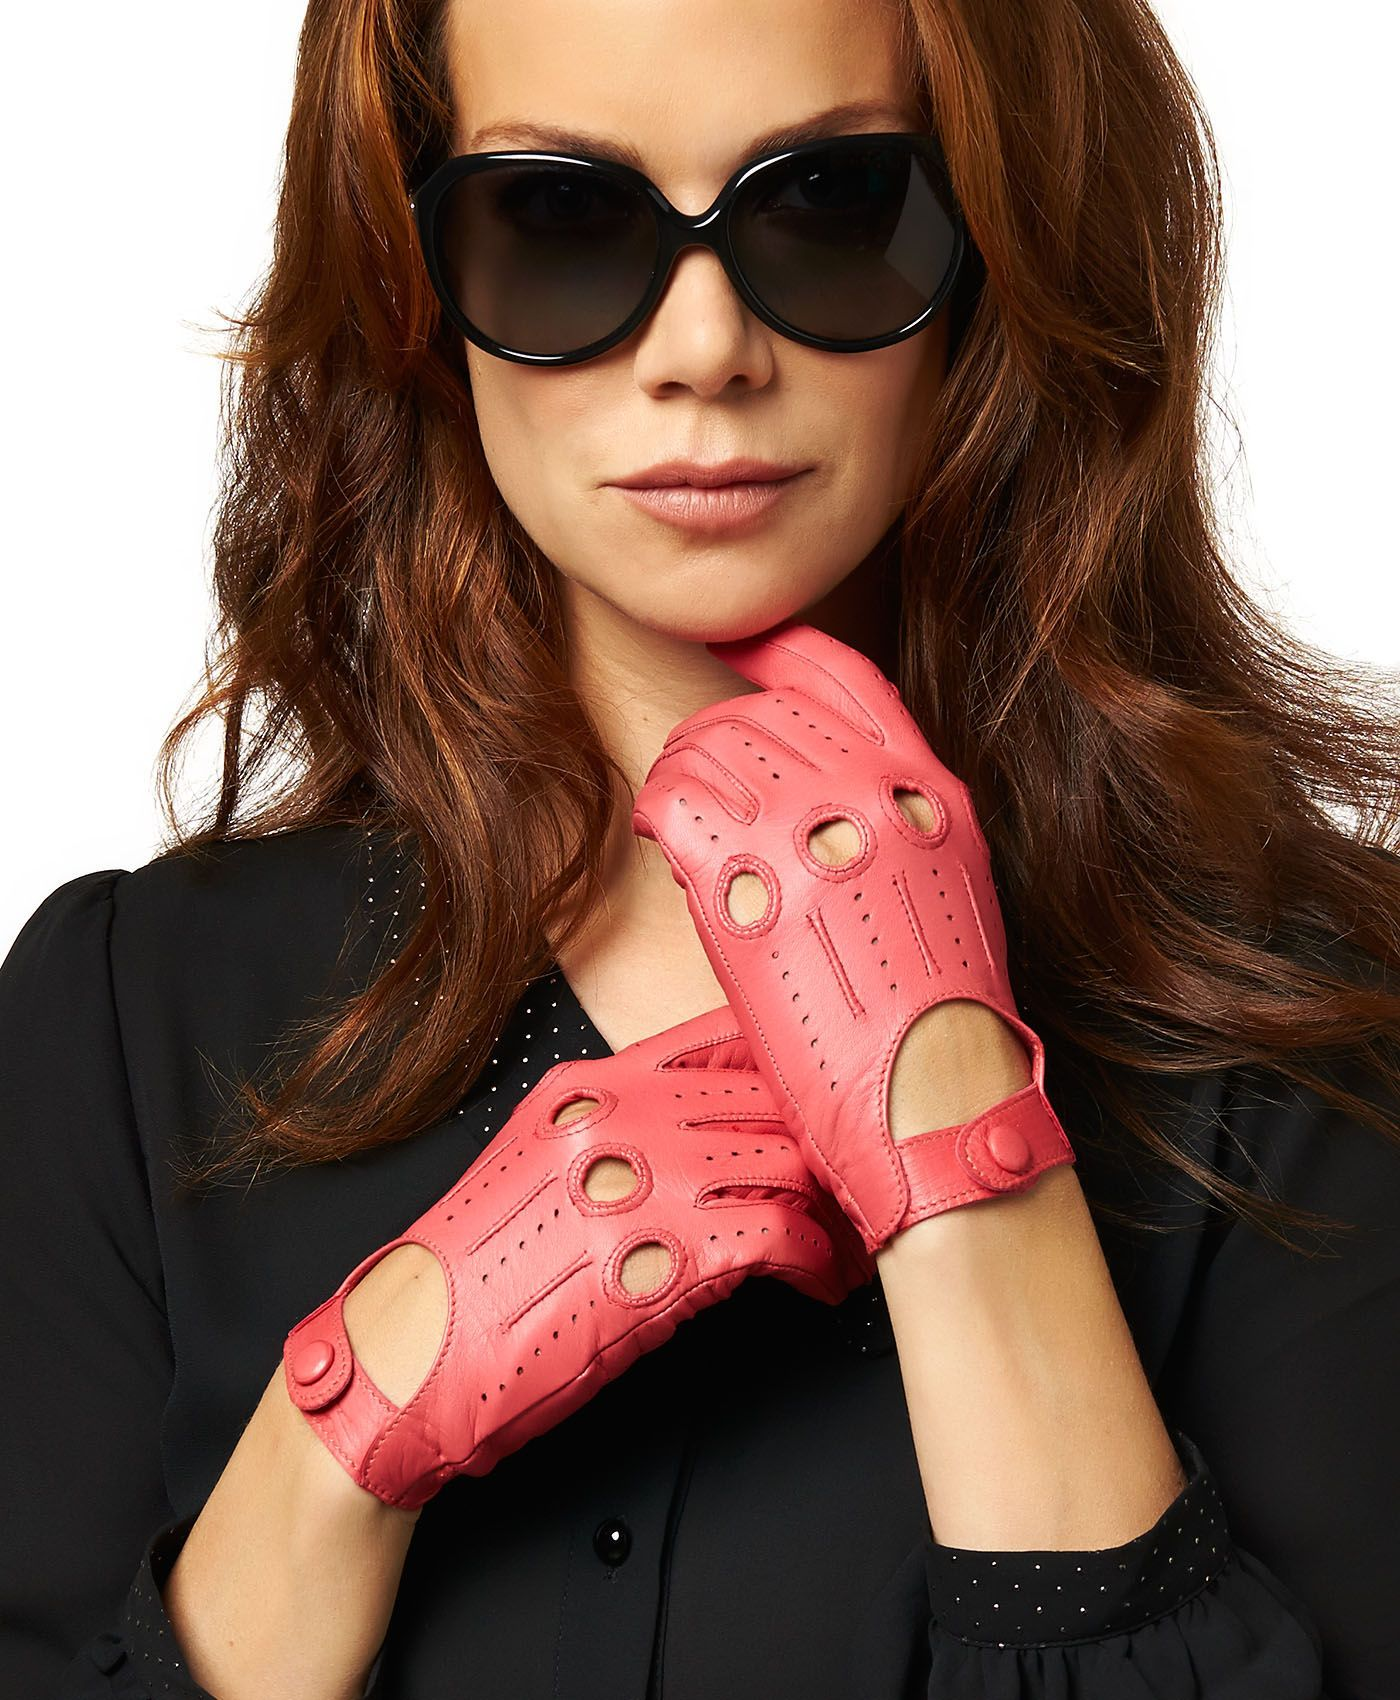 Driving gloves girl - Women S Open Back Leather Driving Gloves By Fratelli Orsini Everyday Free Usa Shipping